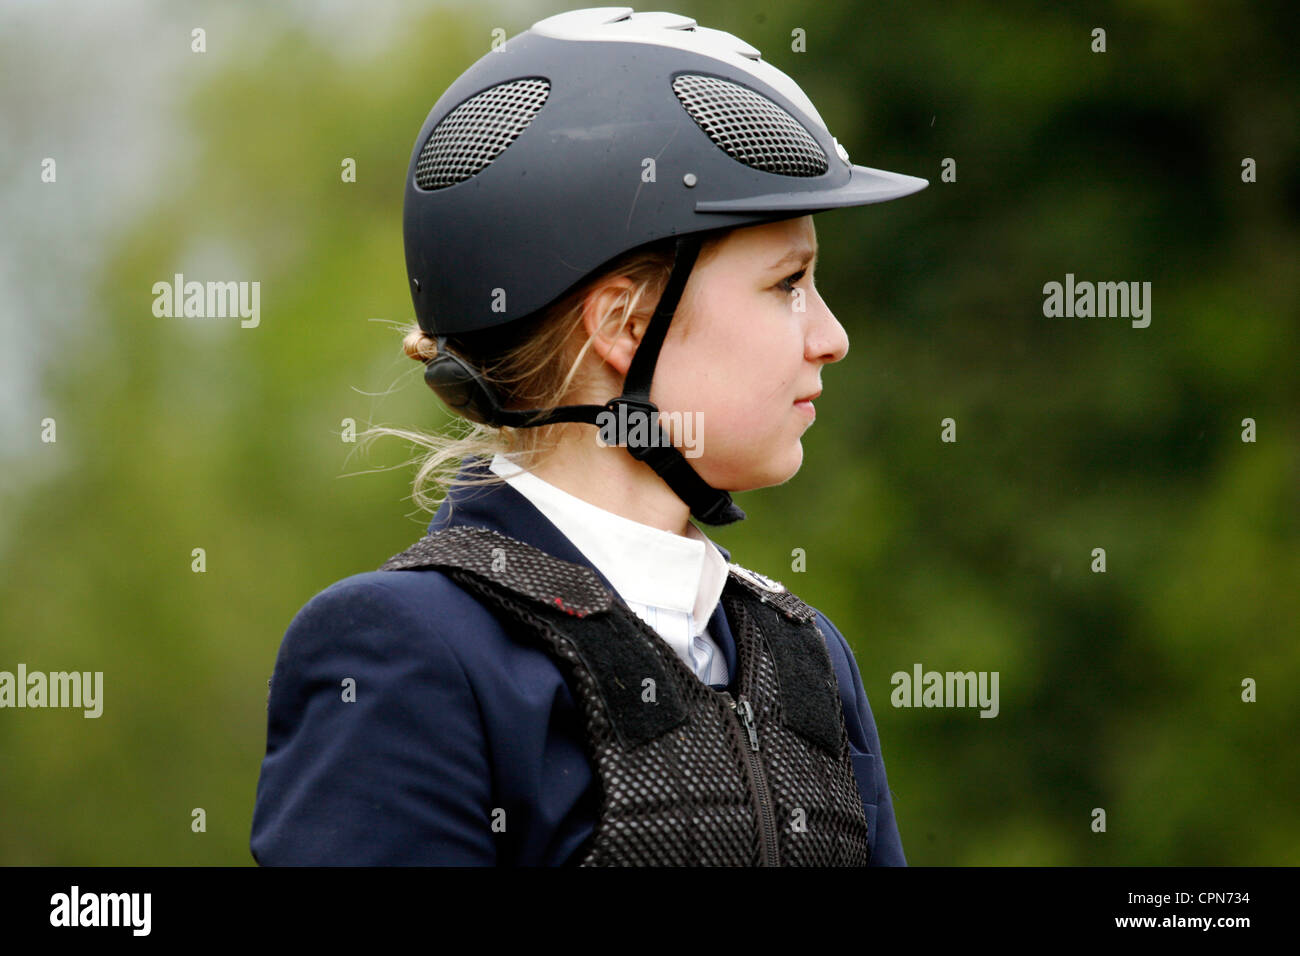 HORSEBACK RIDING - Stock Image